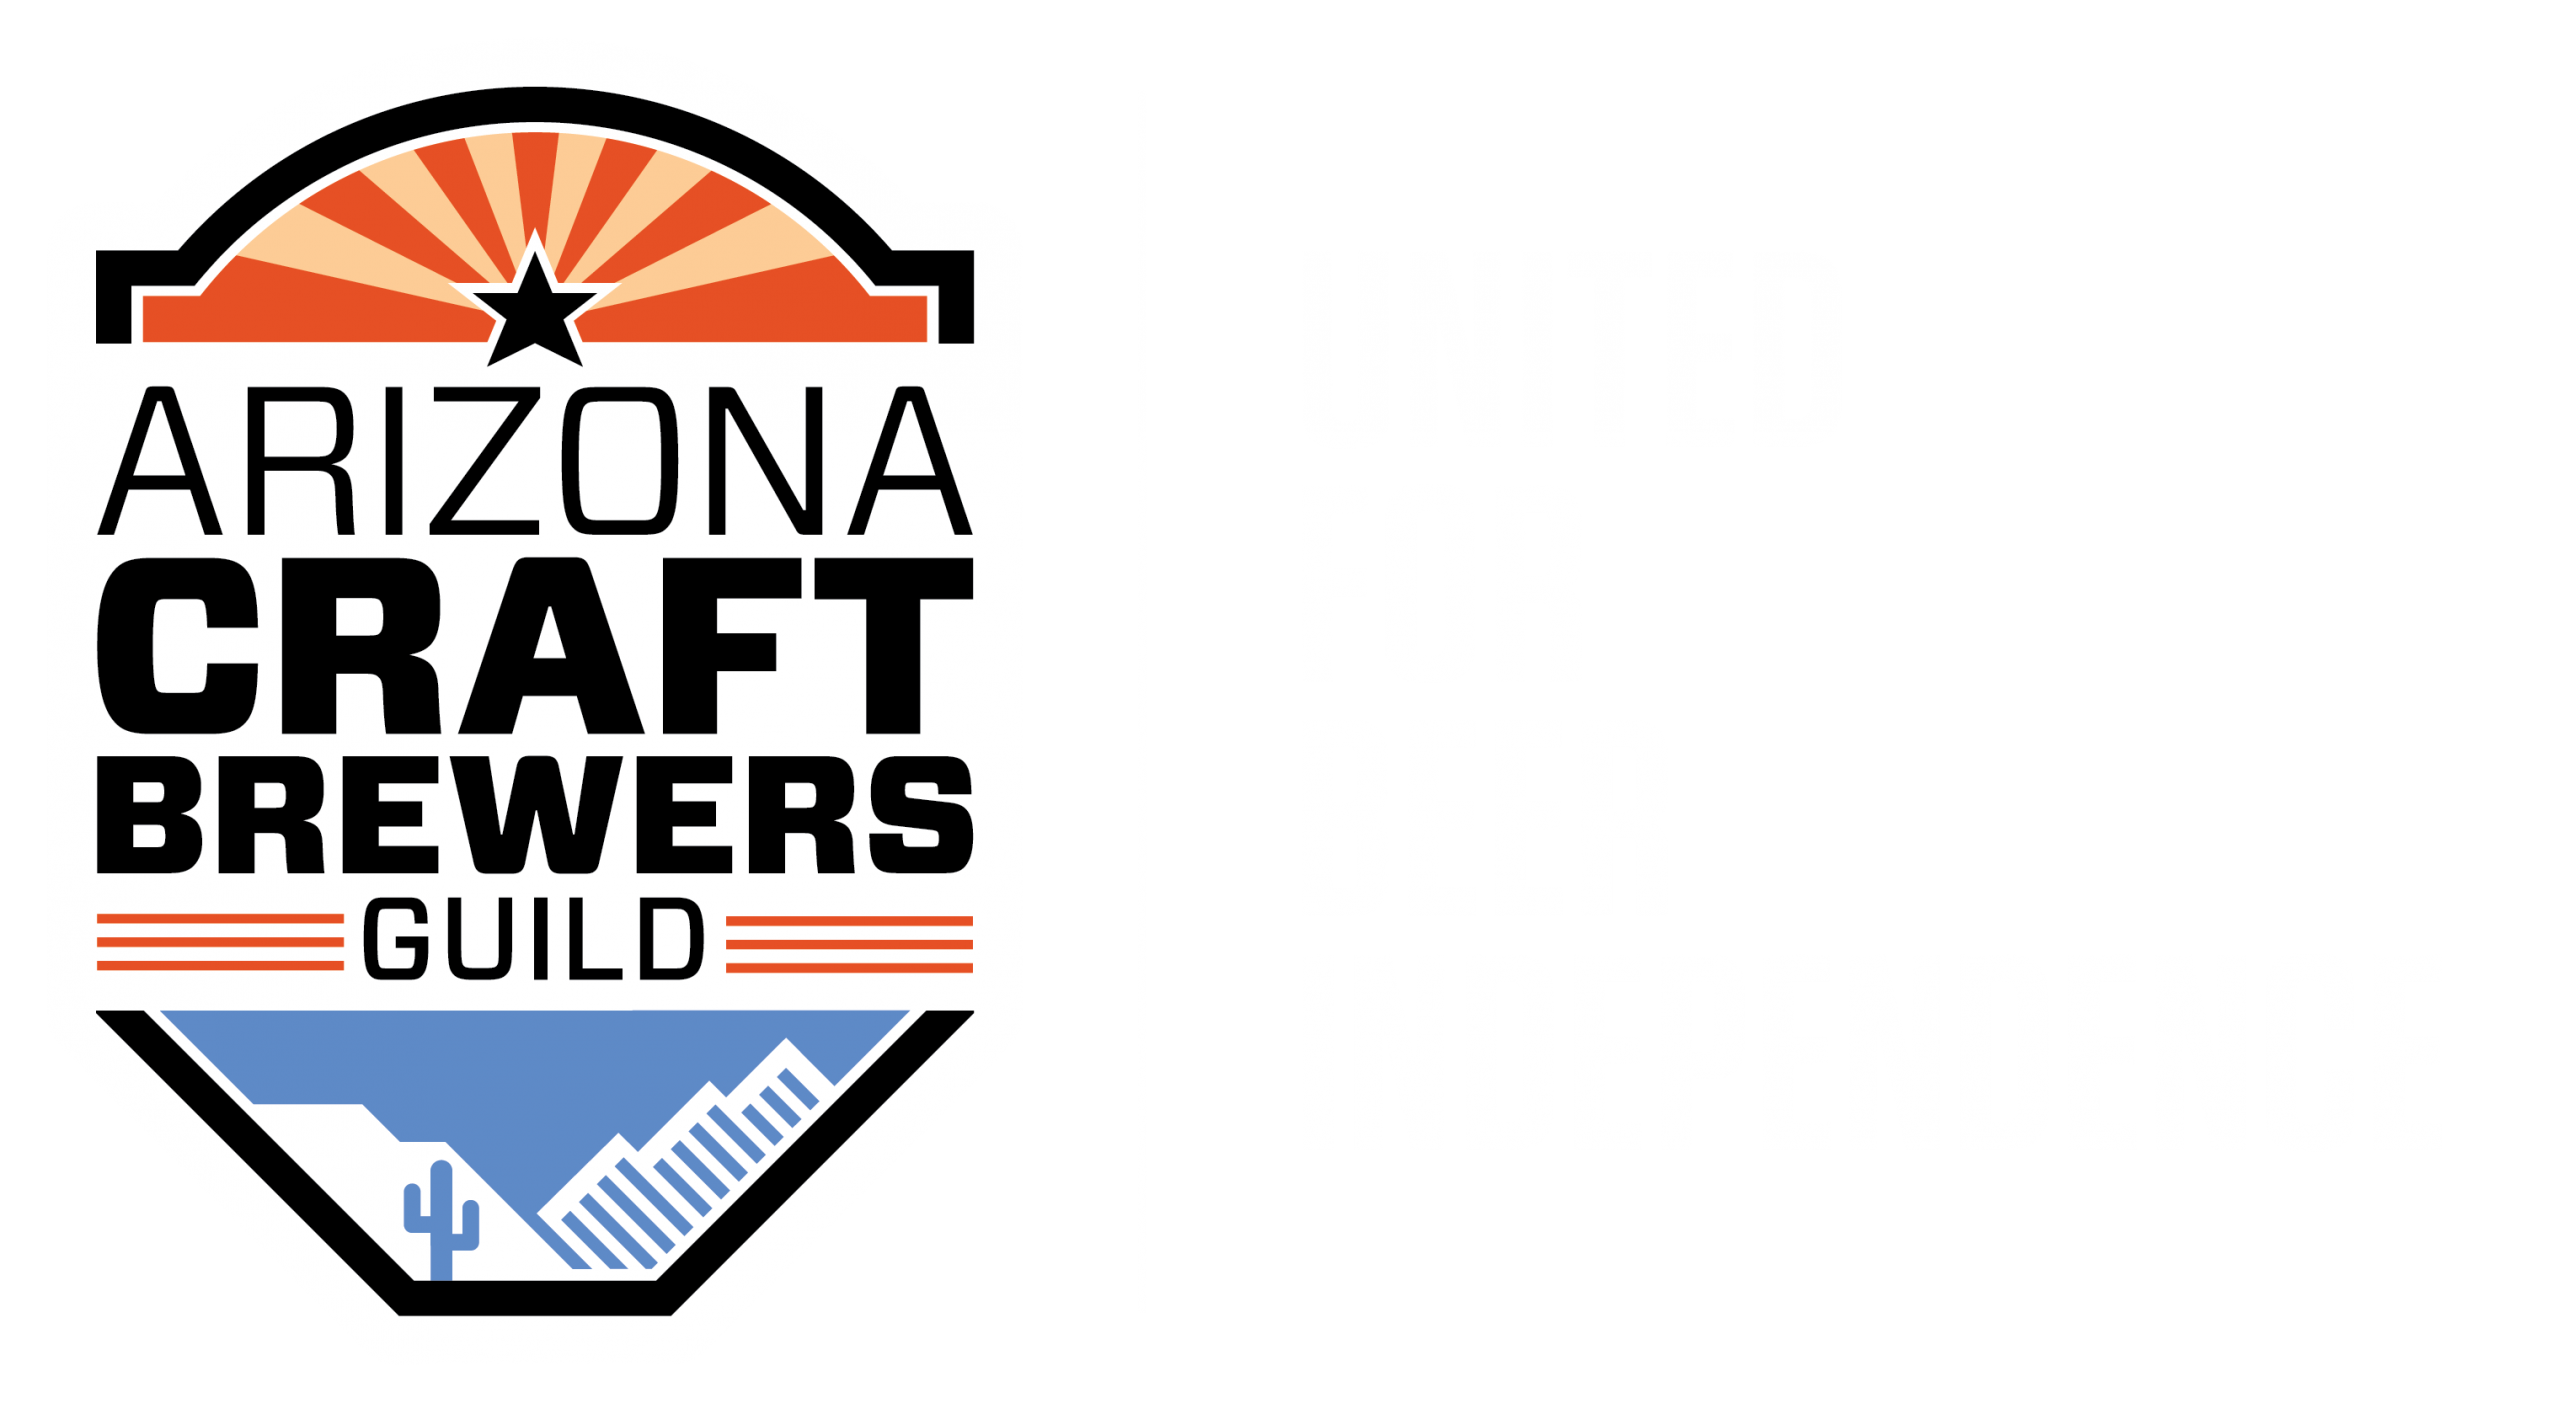 Glendale Insurance, LLC | Arizona Craft Brewers Guild